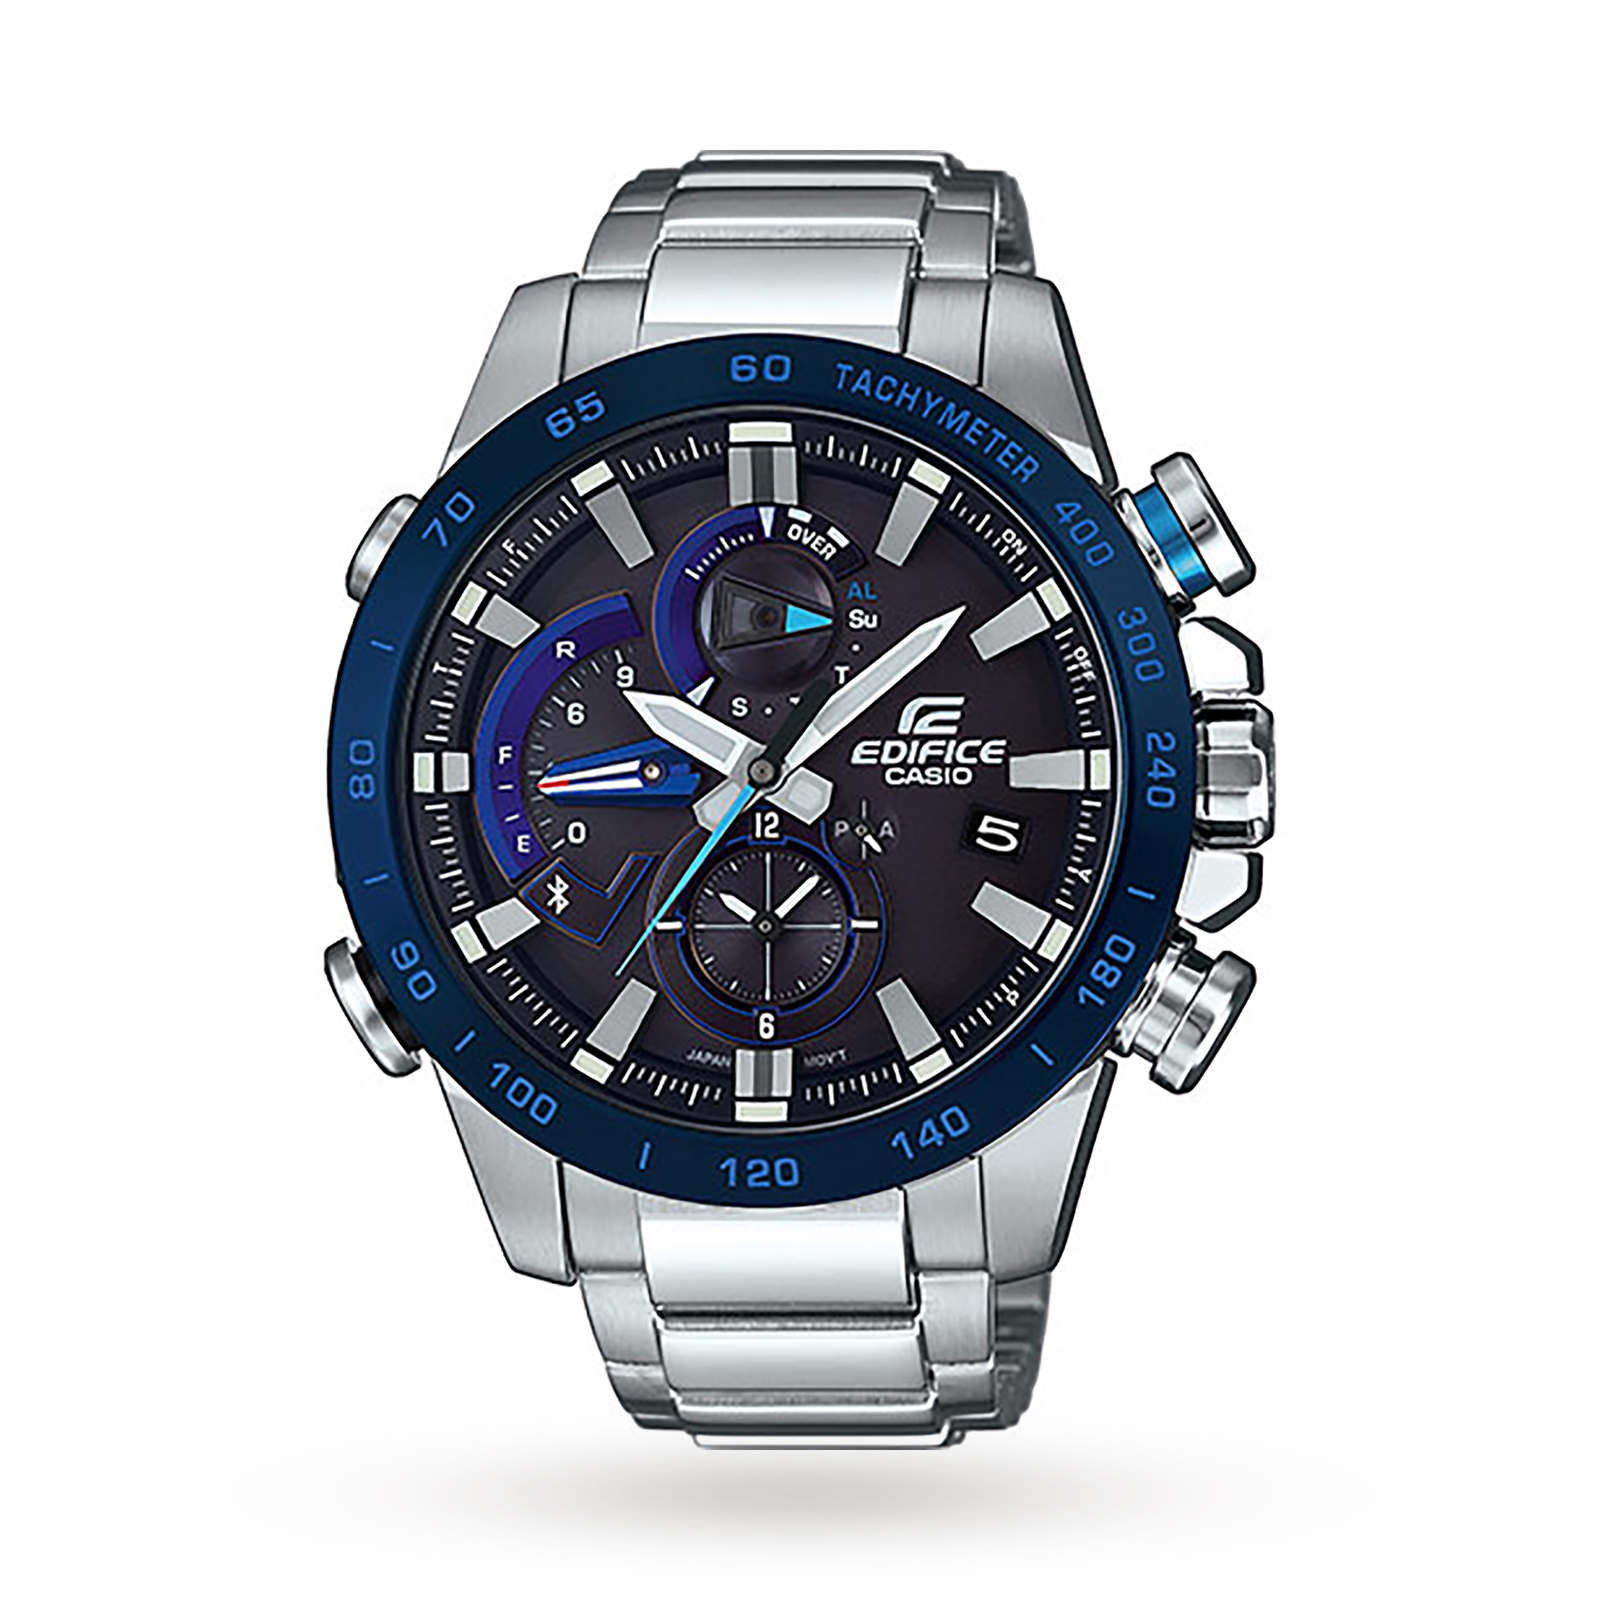 Casio Edifice Bluetooth Triple Connect Alarm Chronograph Watch